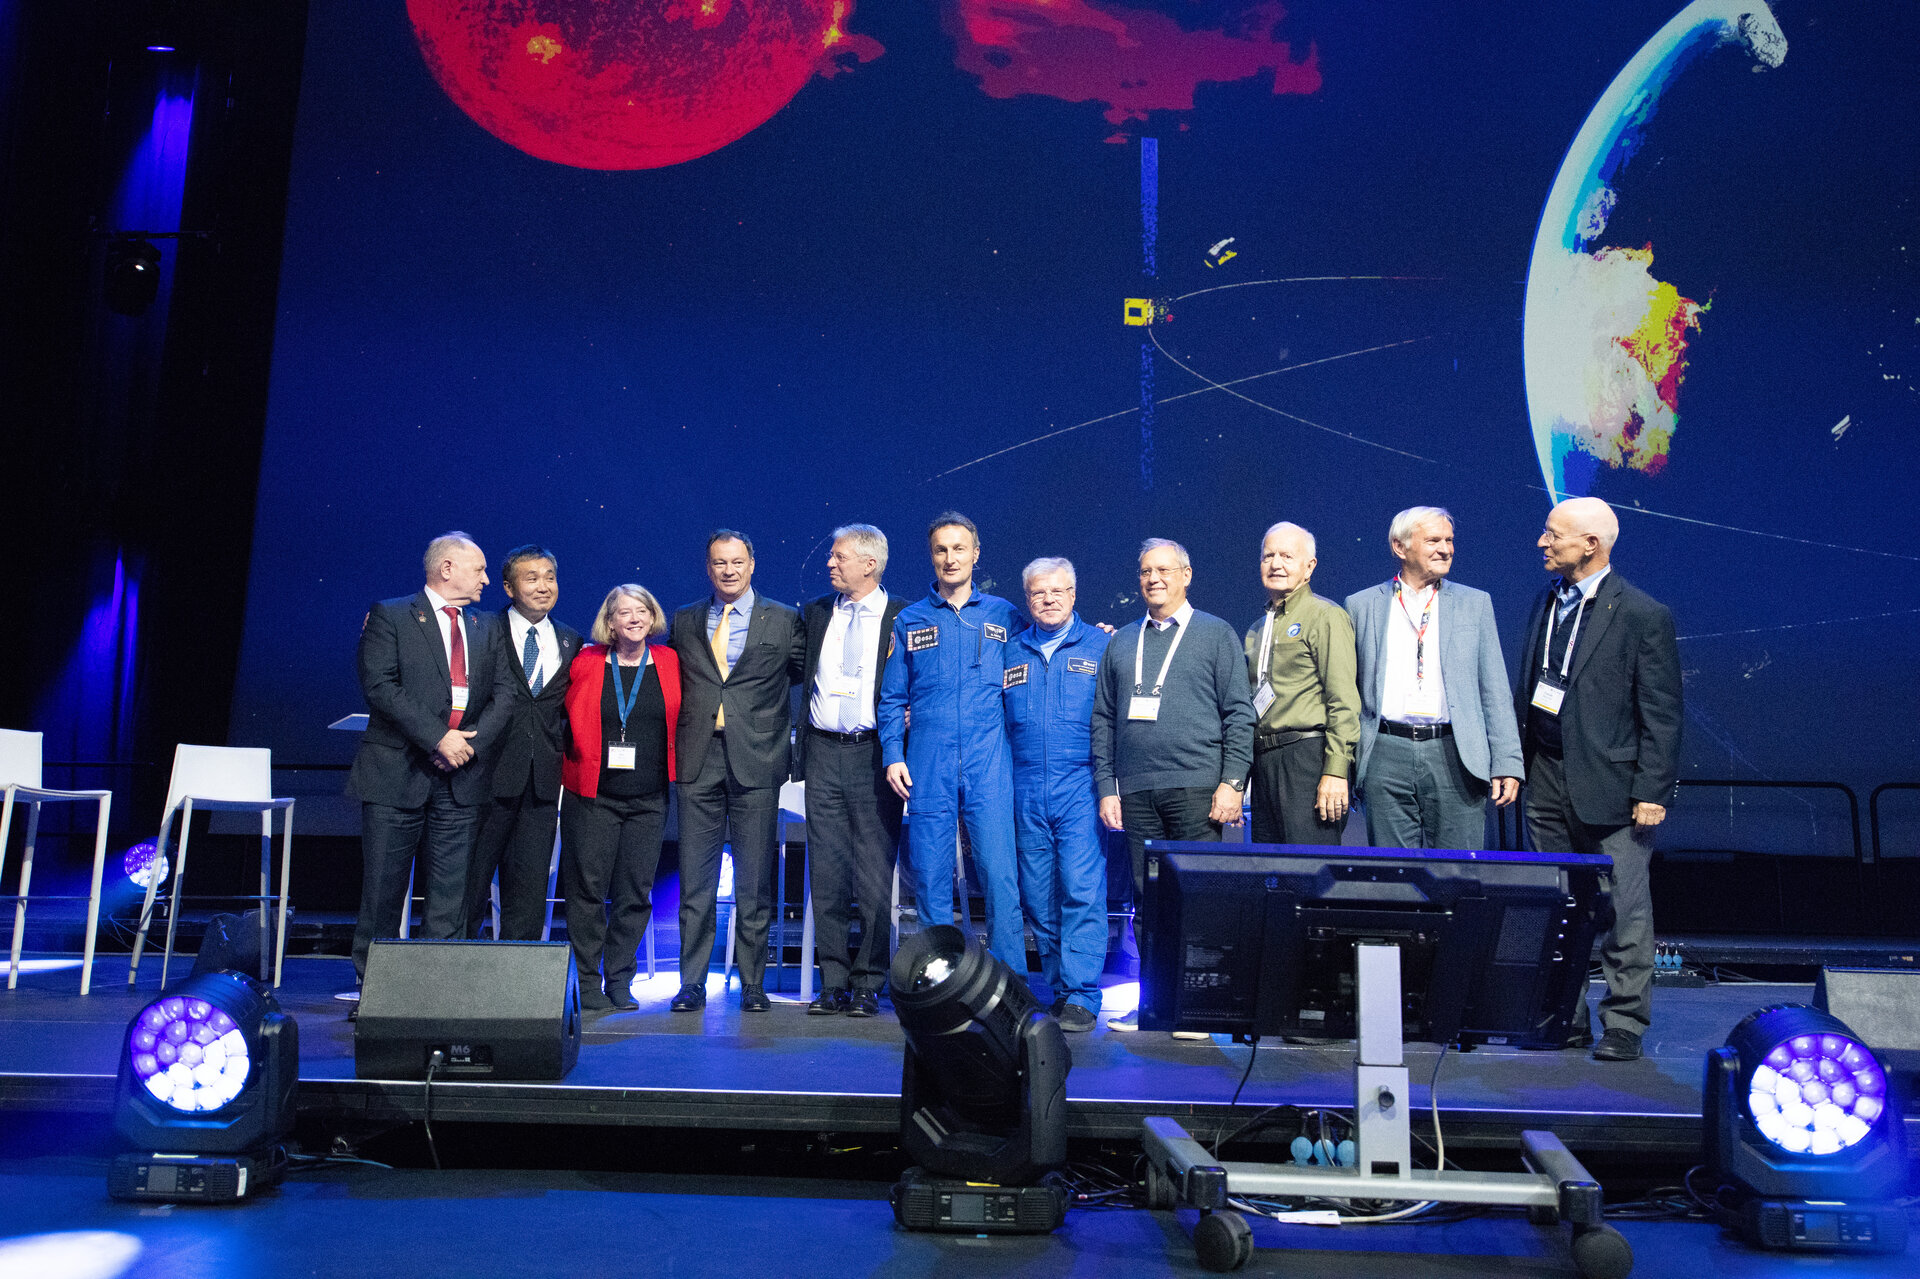 IAC2018 Public Day, Association of Space Explorers event